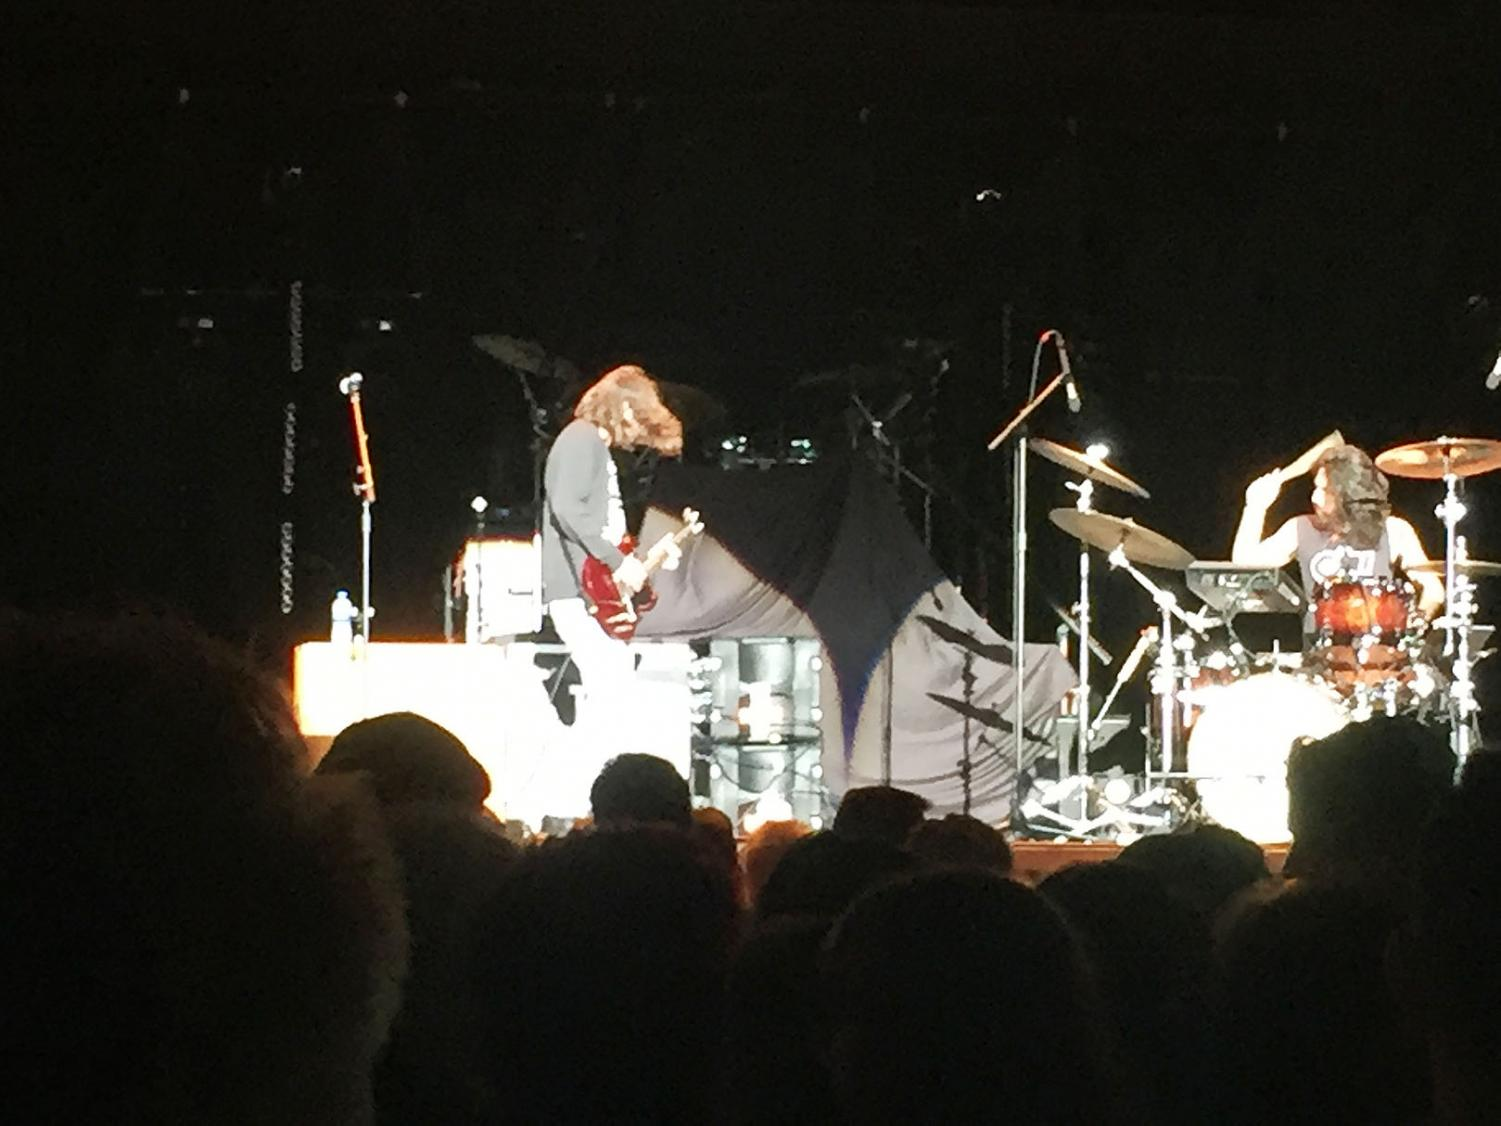 The Dose opened for Daughtry at the Bloomsburg Fair on Sep. 21.